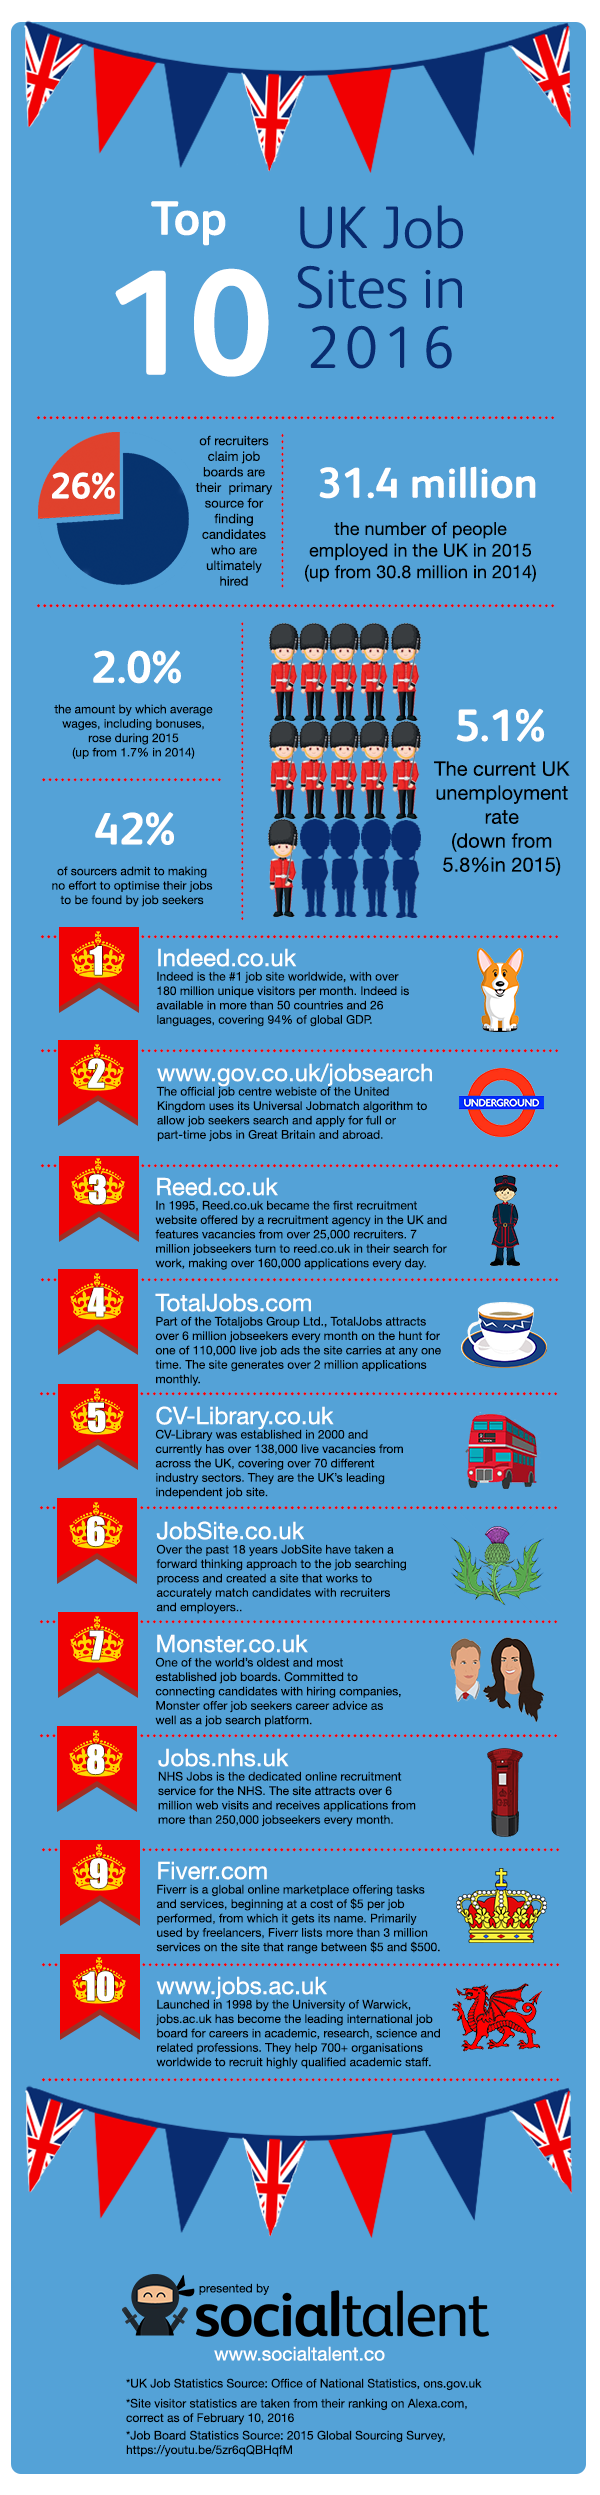 Top-10-UK-Job-Boards-2016-Infographic